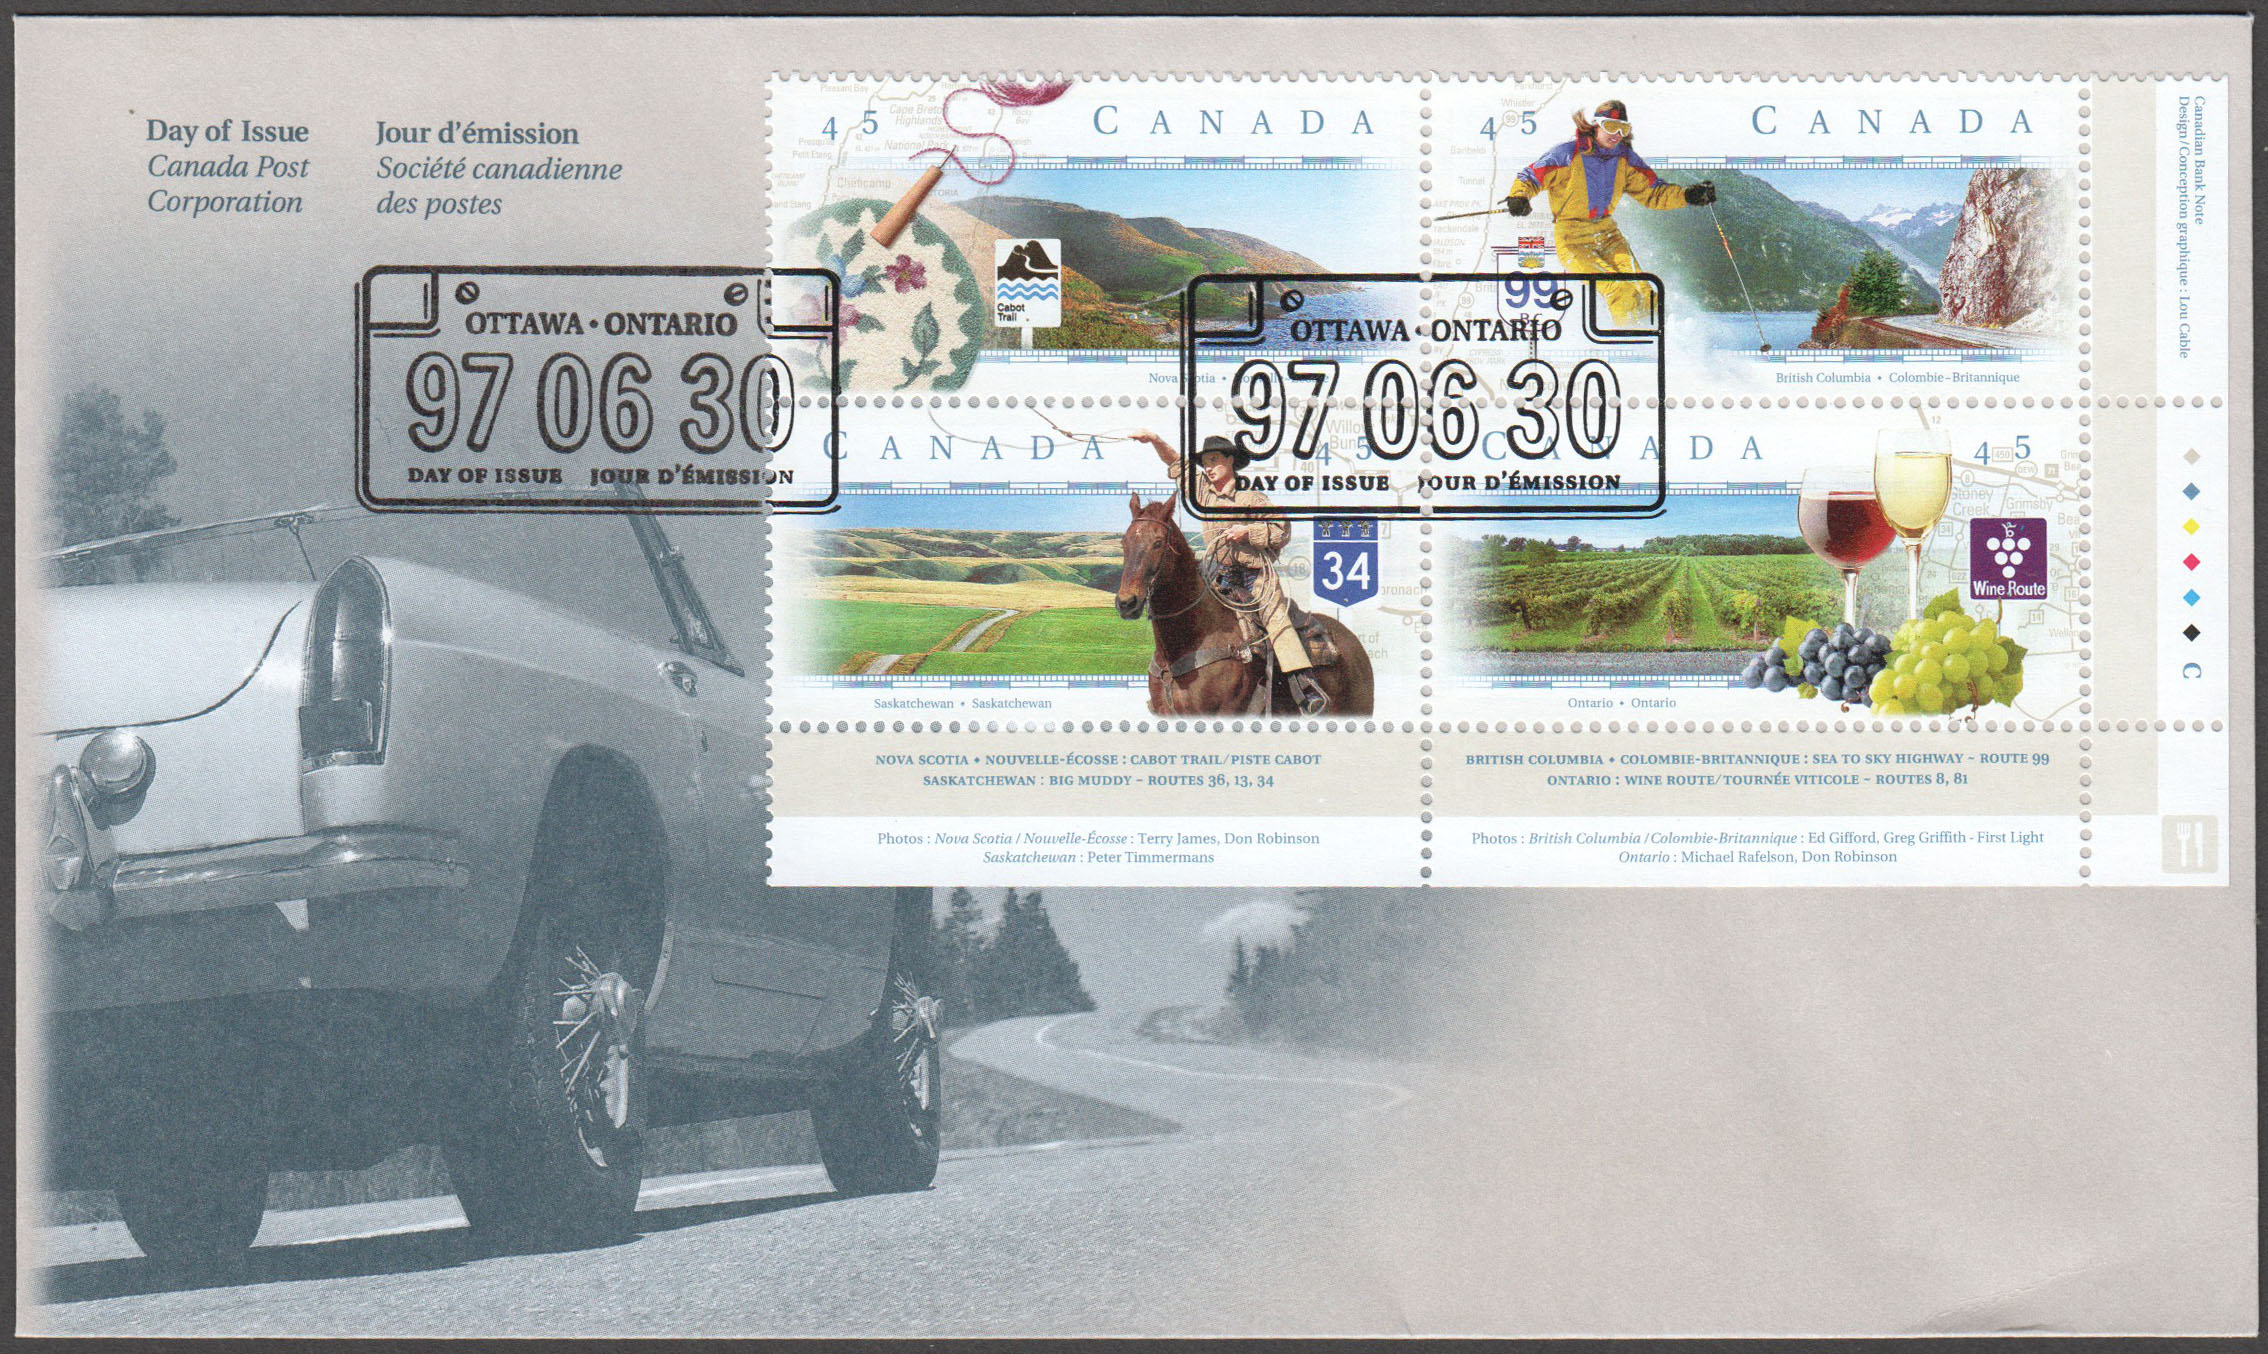 Canada Scott 1653a PB LR FDC - Click Image to Close